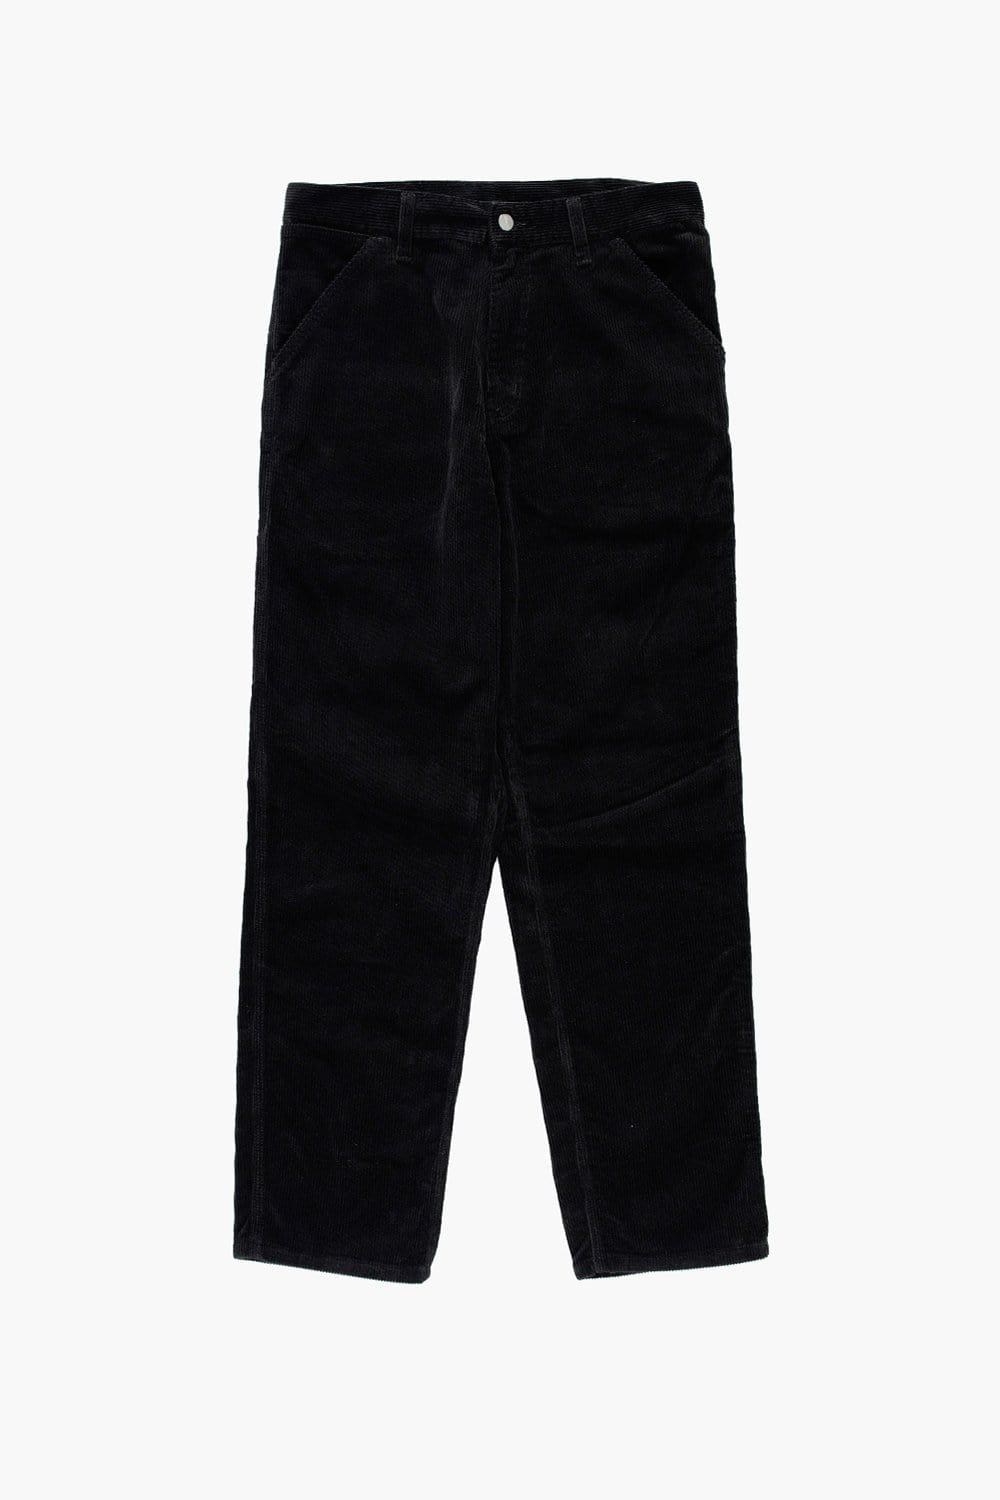 Carhartt WIP Apparel Carhartt WIP x Pop Trading Company Single Knee Pant